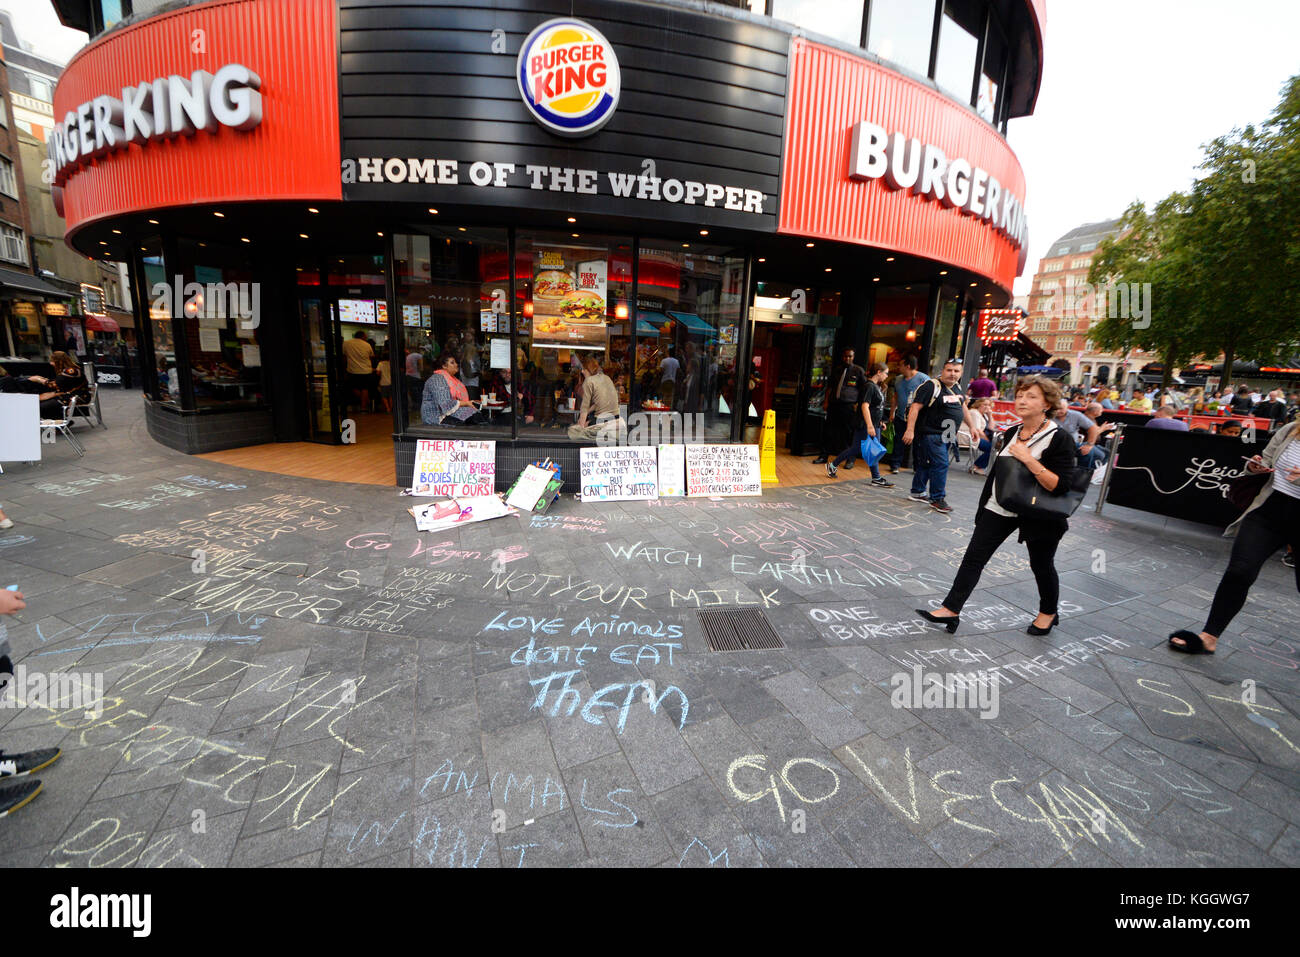 Animal rights activists protesting outside Burger King in Leicester Square, London. Chalk slogans on pavement. Woman - Stock Image